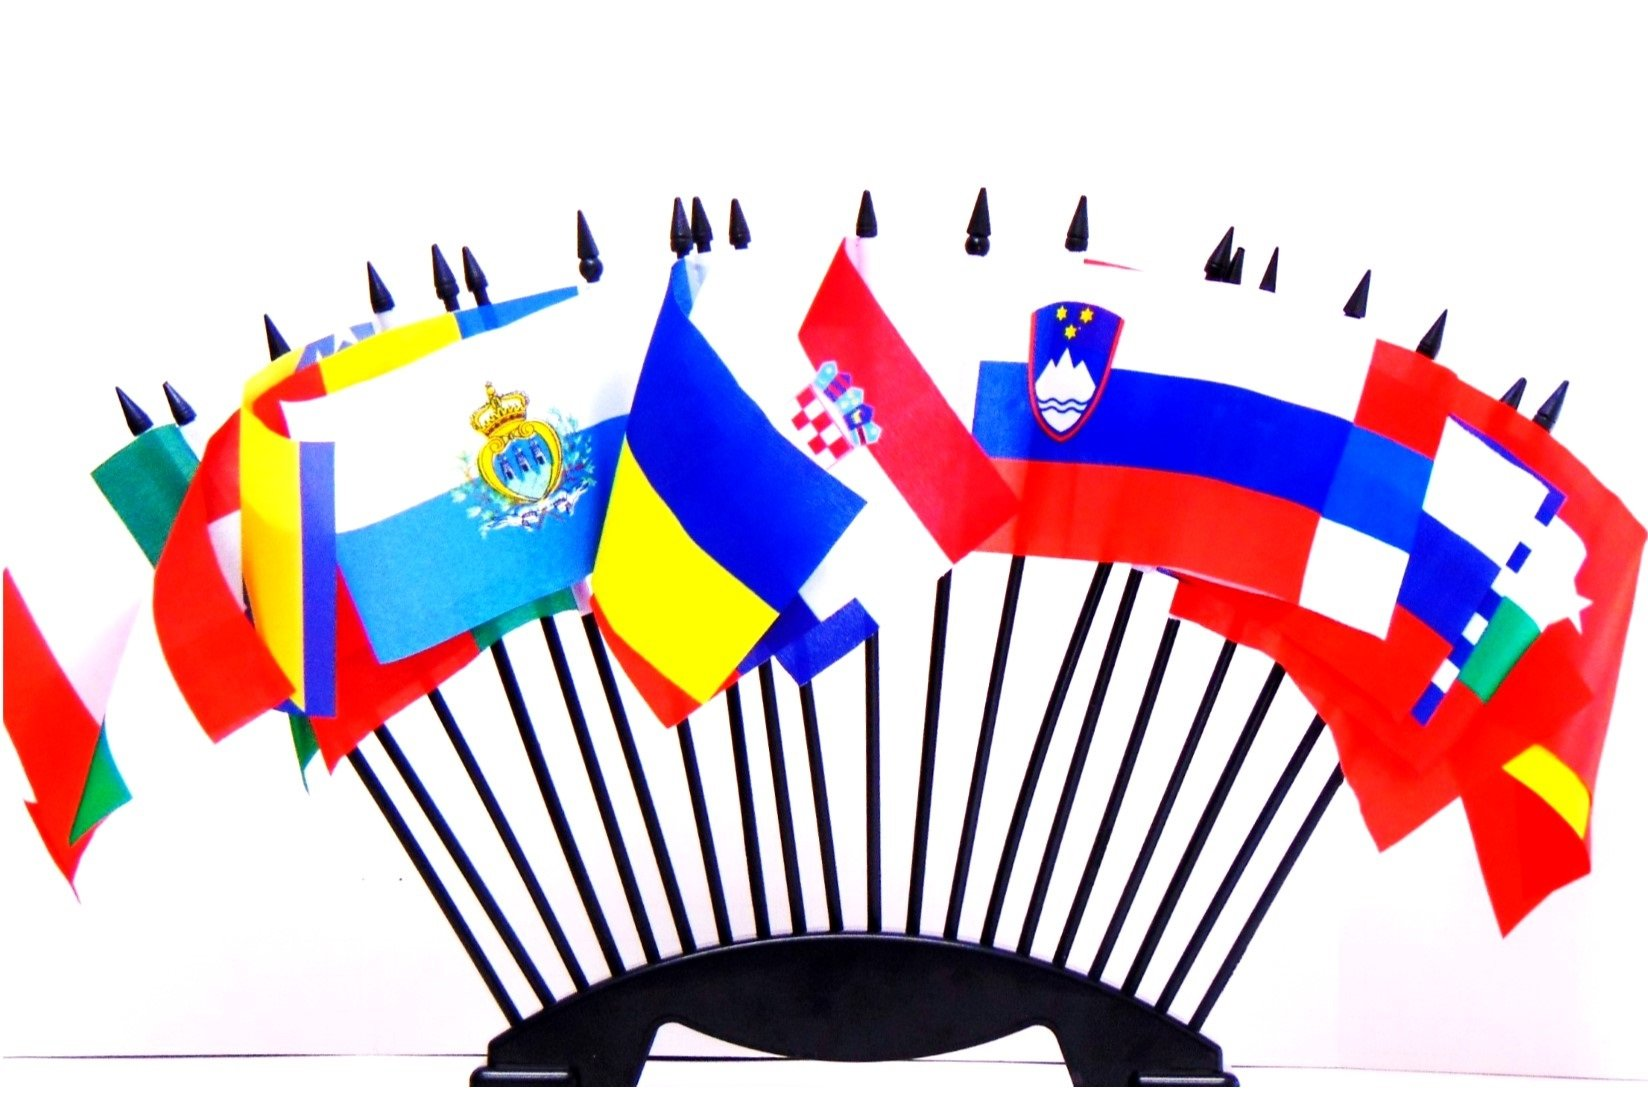 """SOUTHEAST EUROPE WORLD FLAG SET with BASE--20 Polyester 4""""x6"""" Flags, One Flag for Each Country in Southeast Europe, 4x6 Miniature Desk & Table Flags, Small Mini Stick Flags"""